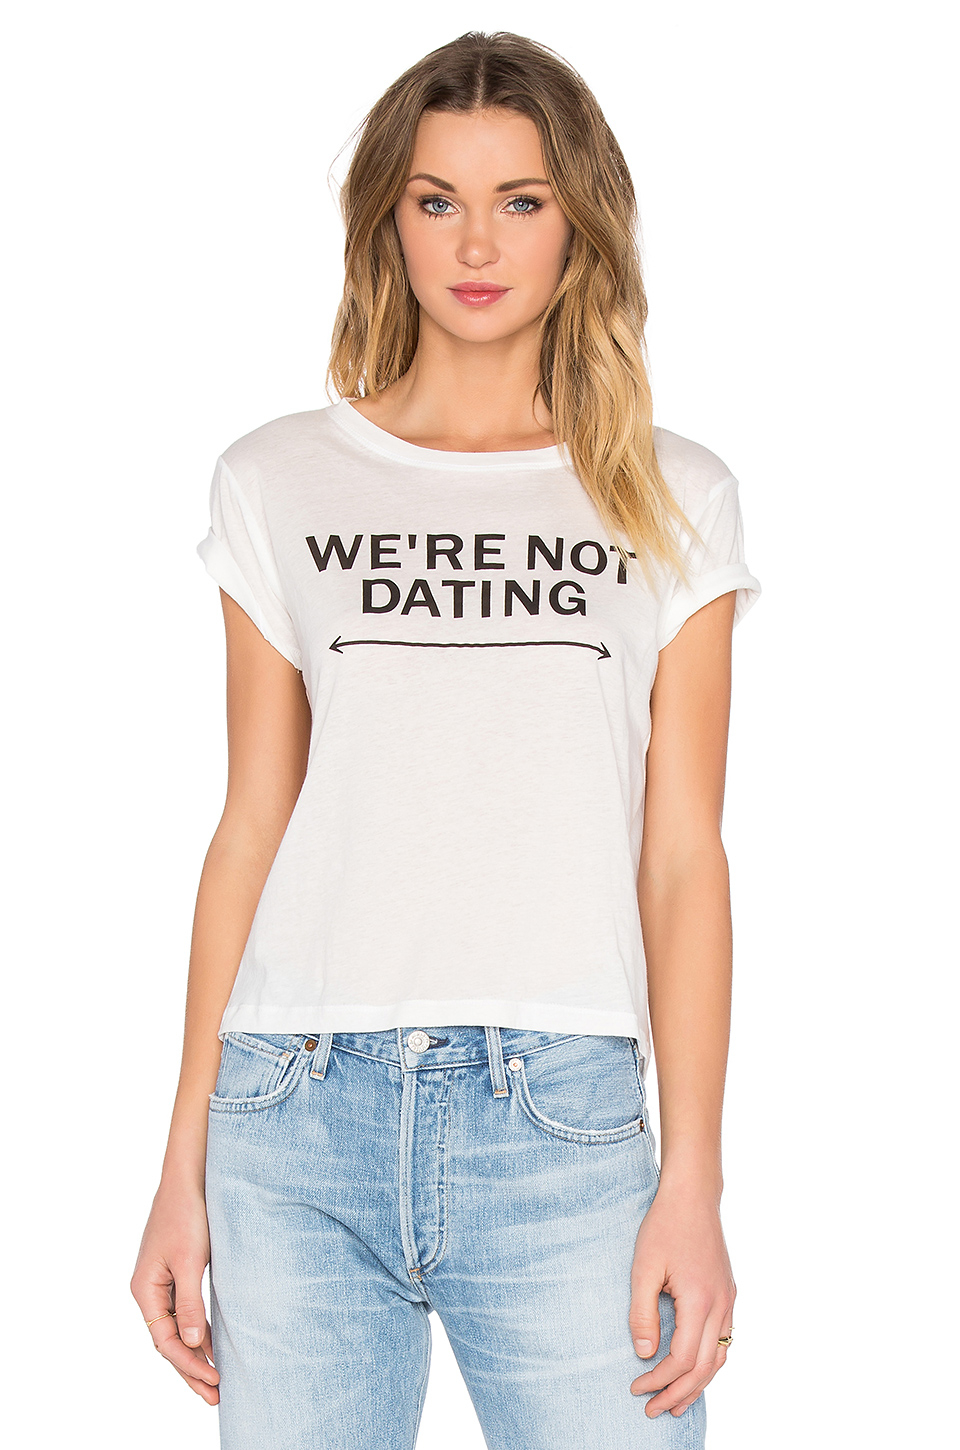 Dating clothing line